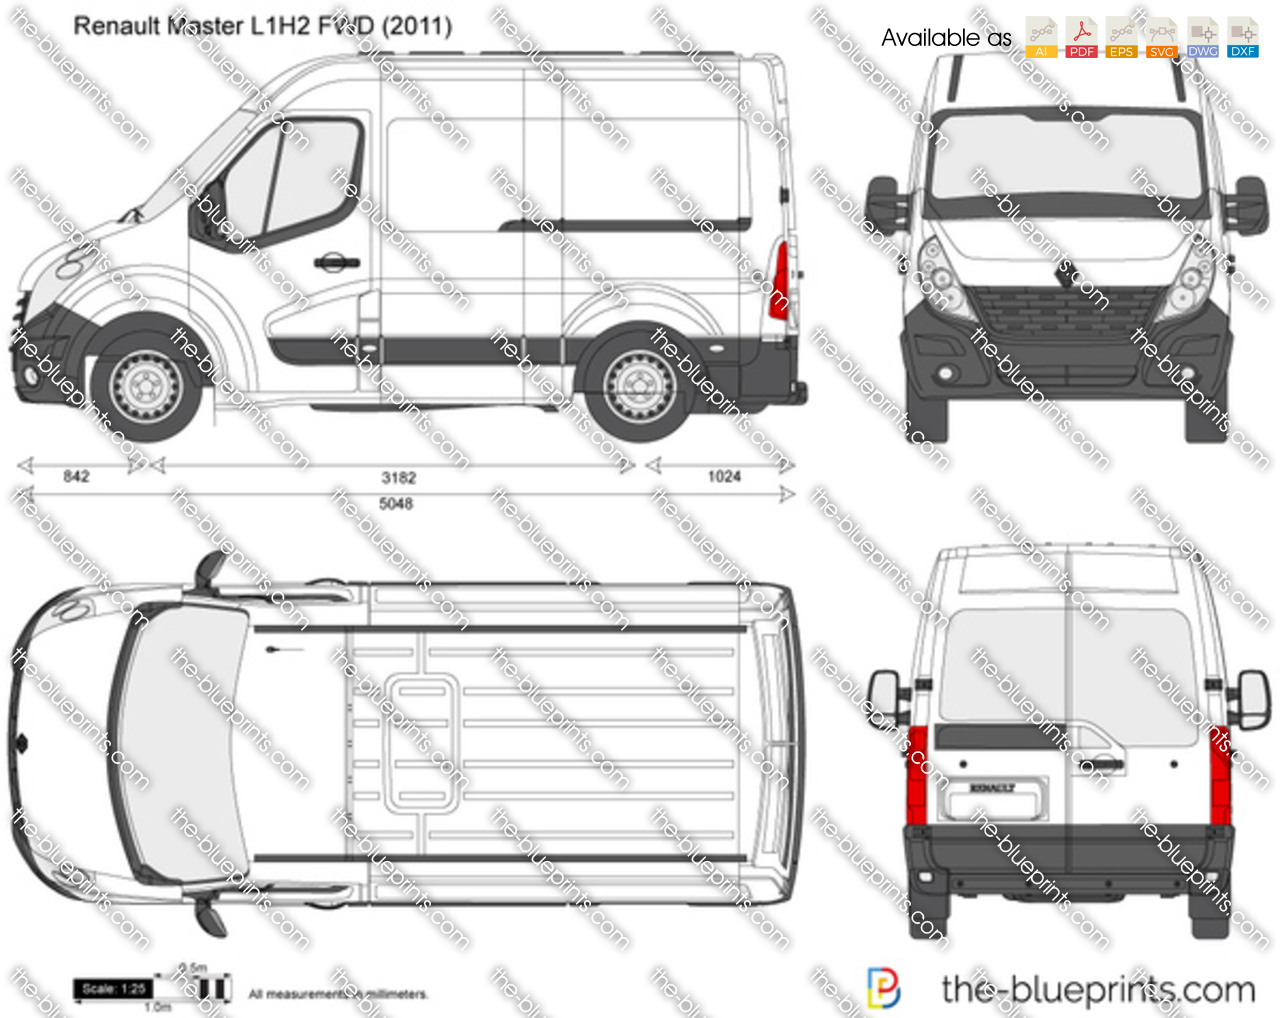 renault master l1h2 fwd vector drawing. Black Bedroom Furniture Sets. Home Design Ideas